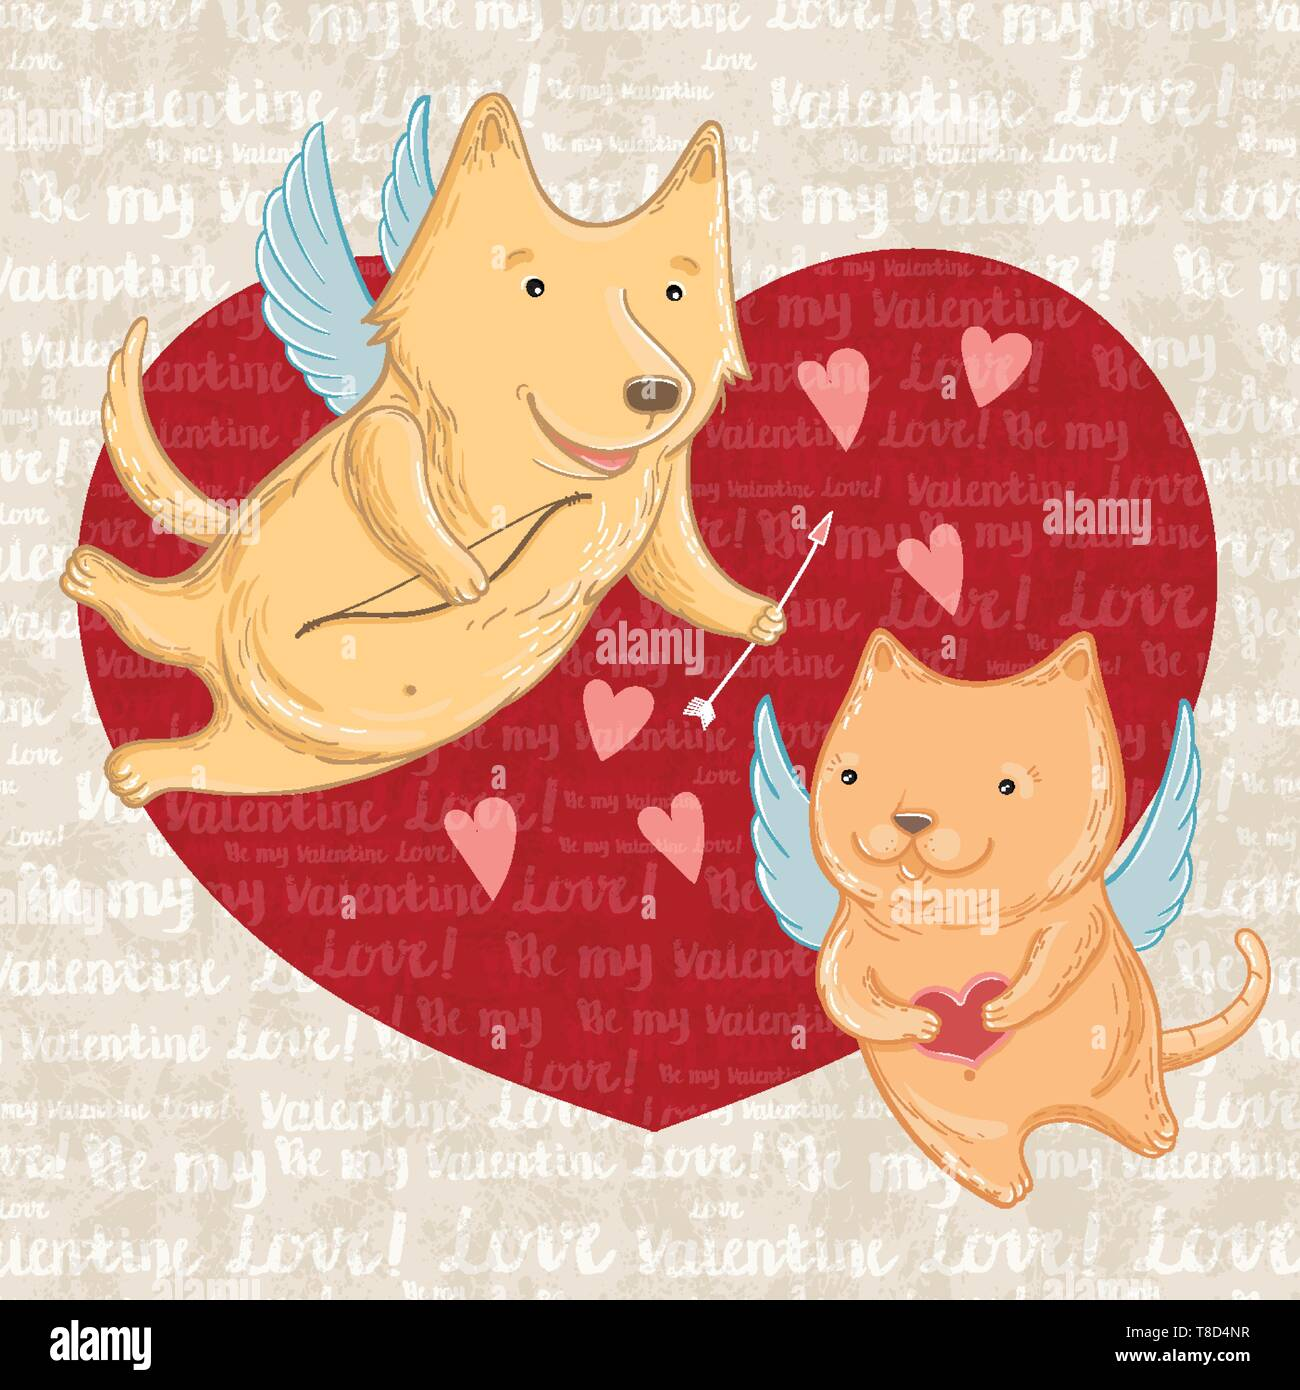 Vector illustration of Cupid dog and cat, greeting valentine. Template for greeting cards. - Stock Image